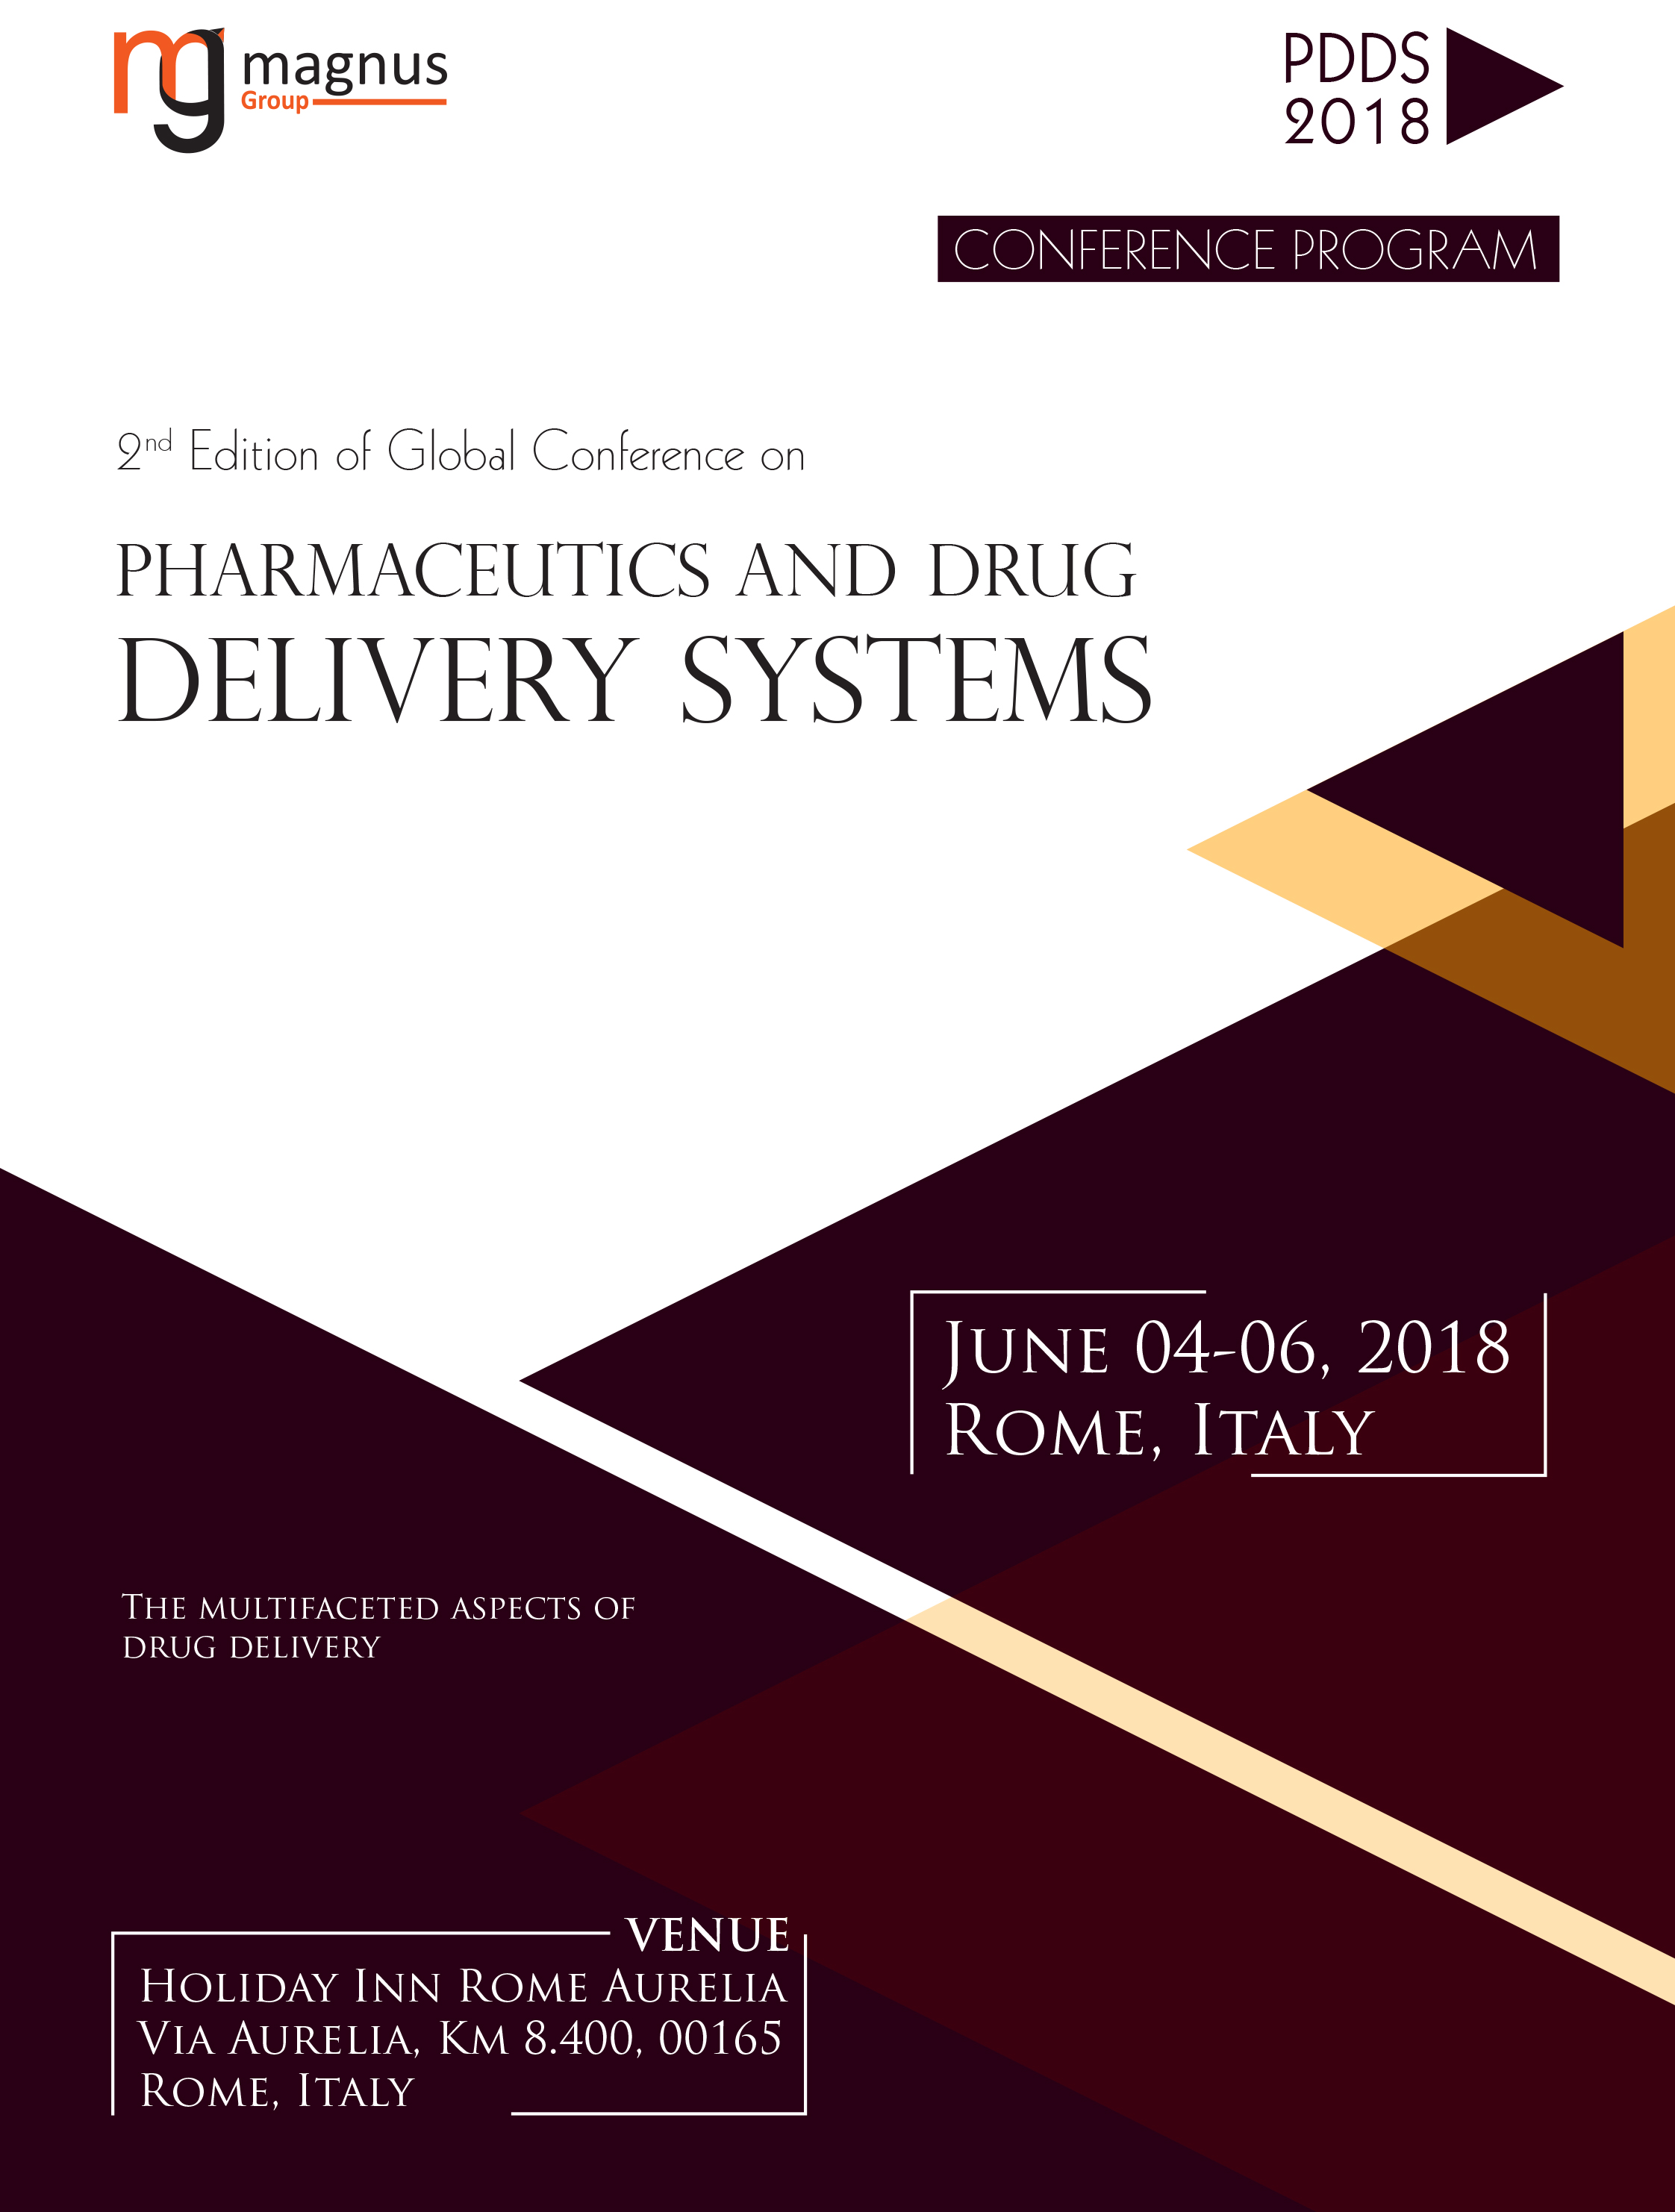 Global Conference on Pharmaceutics and Drug Delivery Systems | Rome, Italy Program